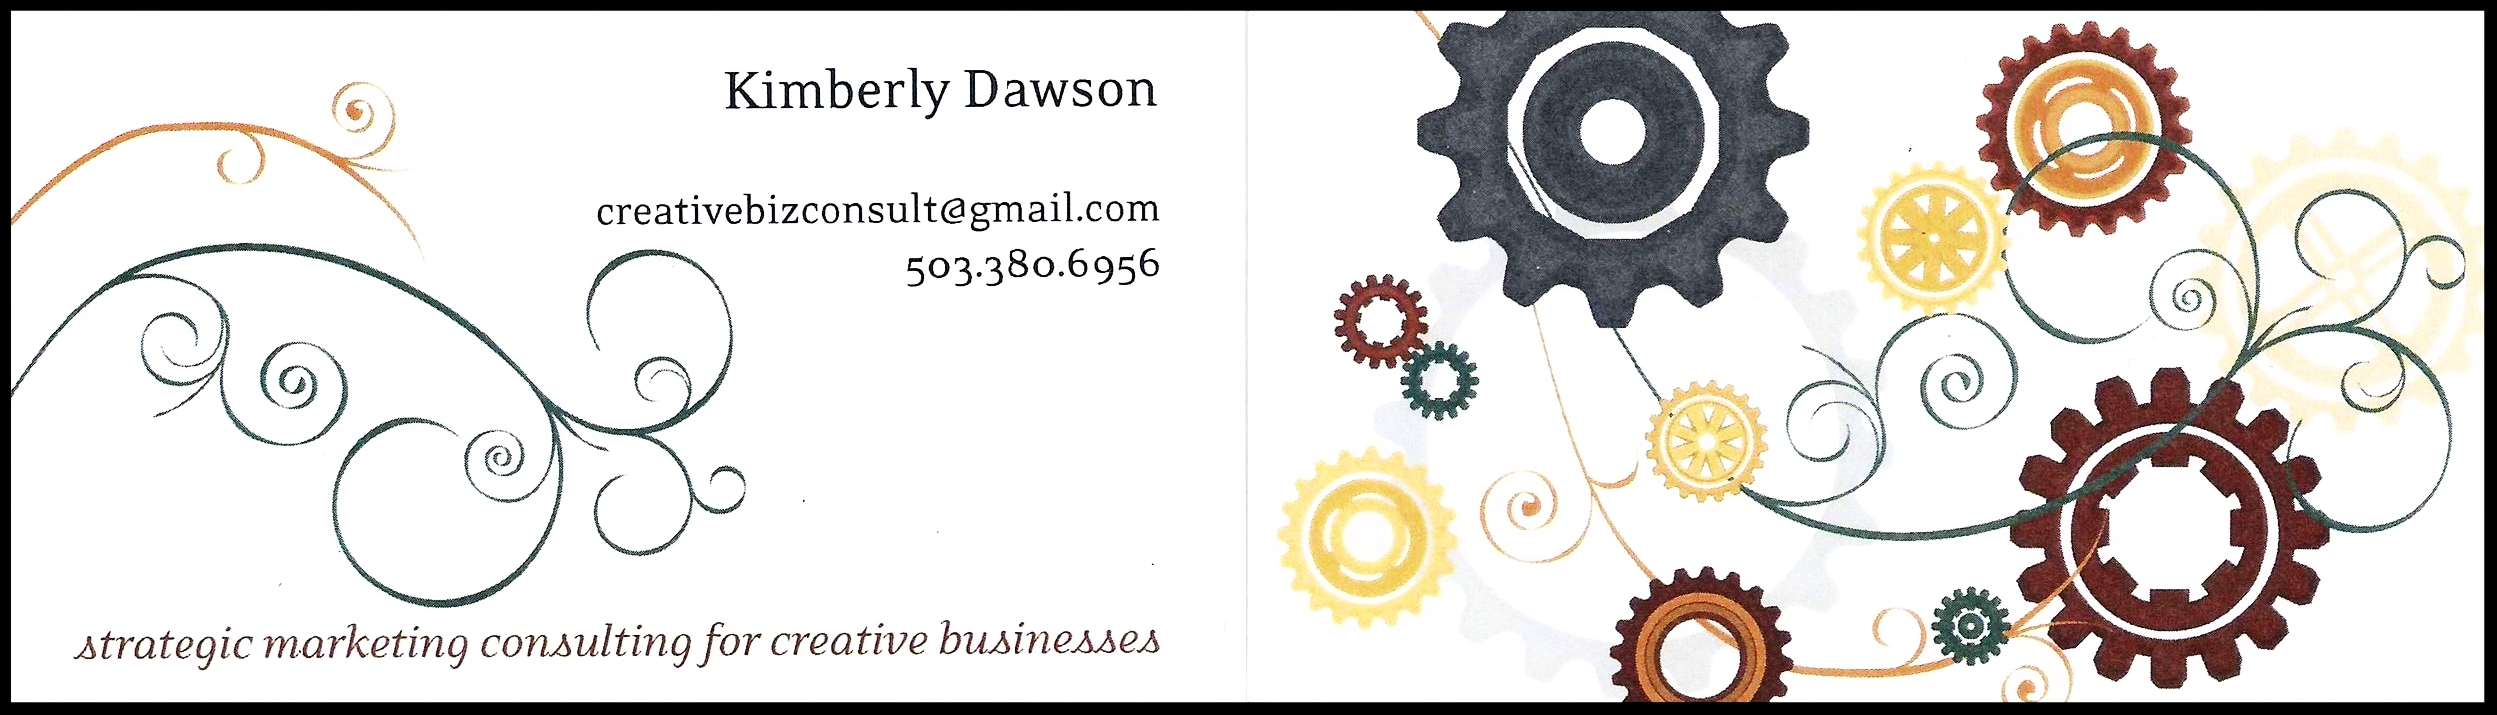 My first business card, branded with an email address: creativebizconsult@gmail.com (2009-10).